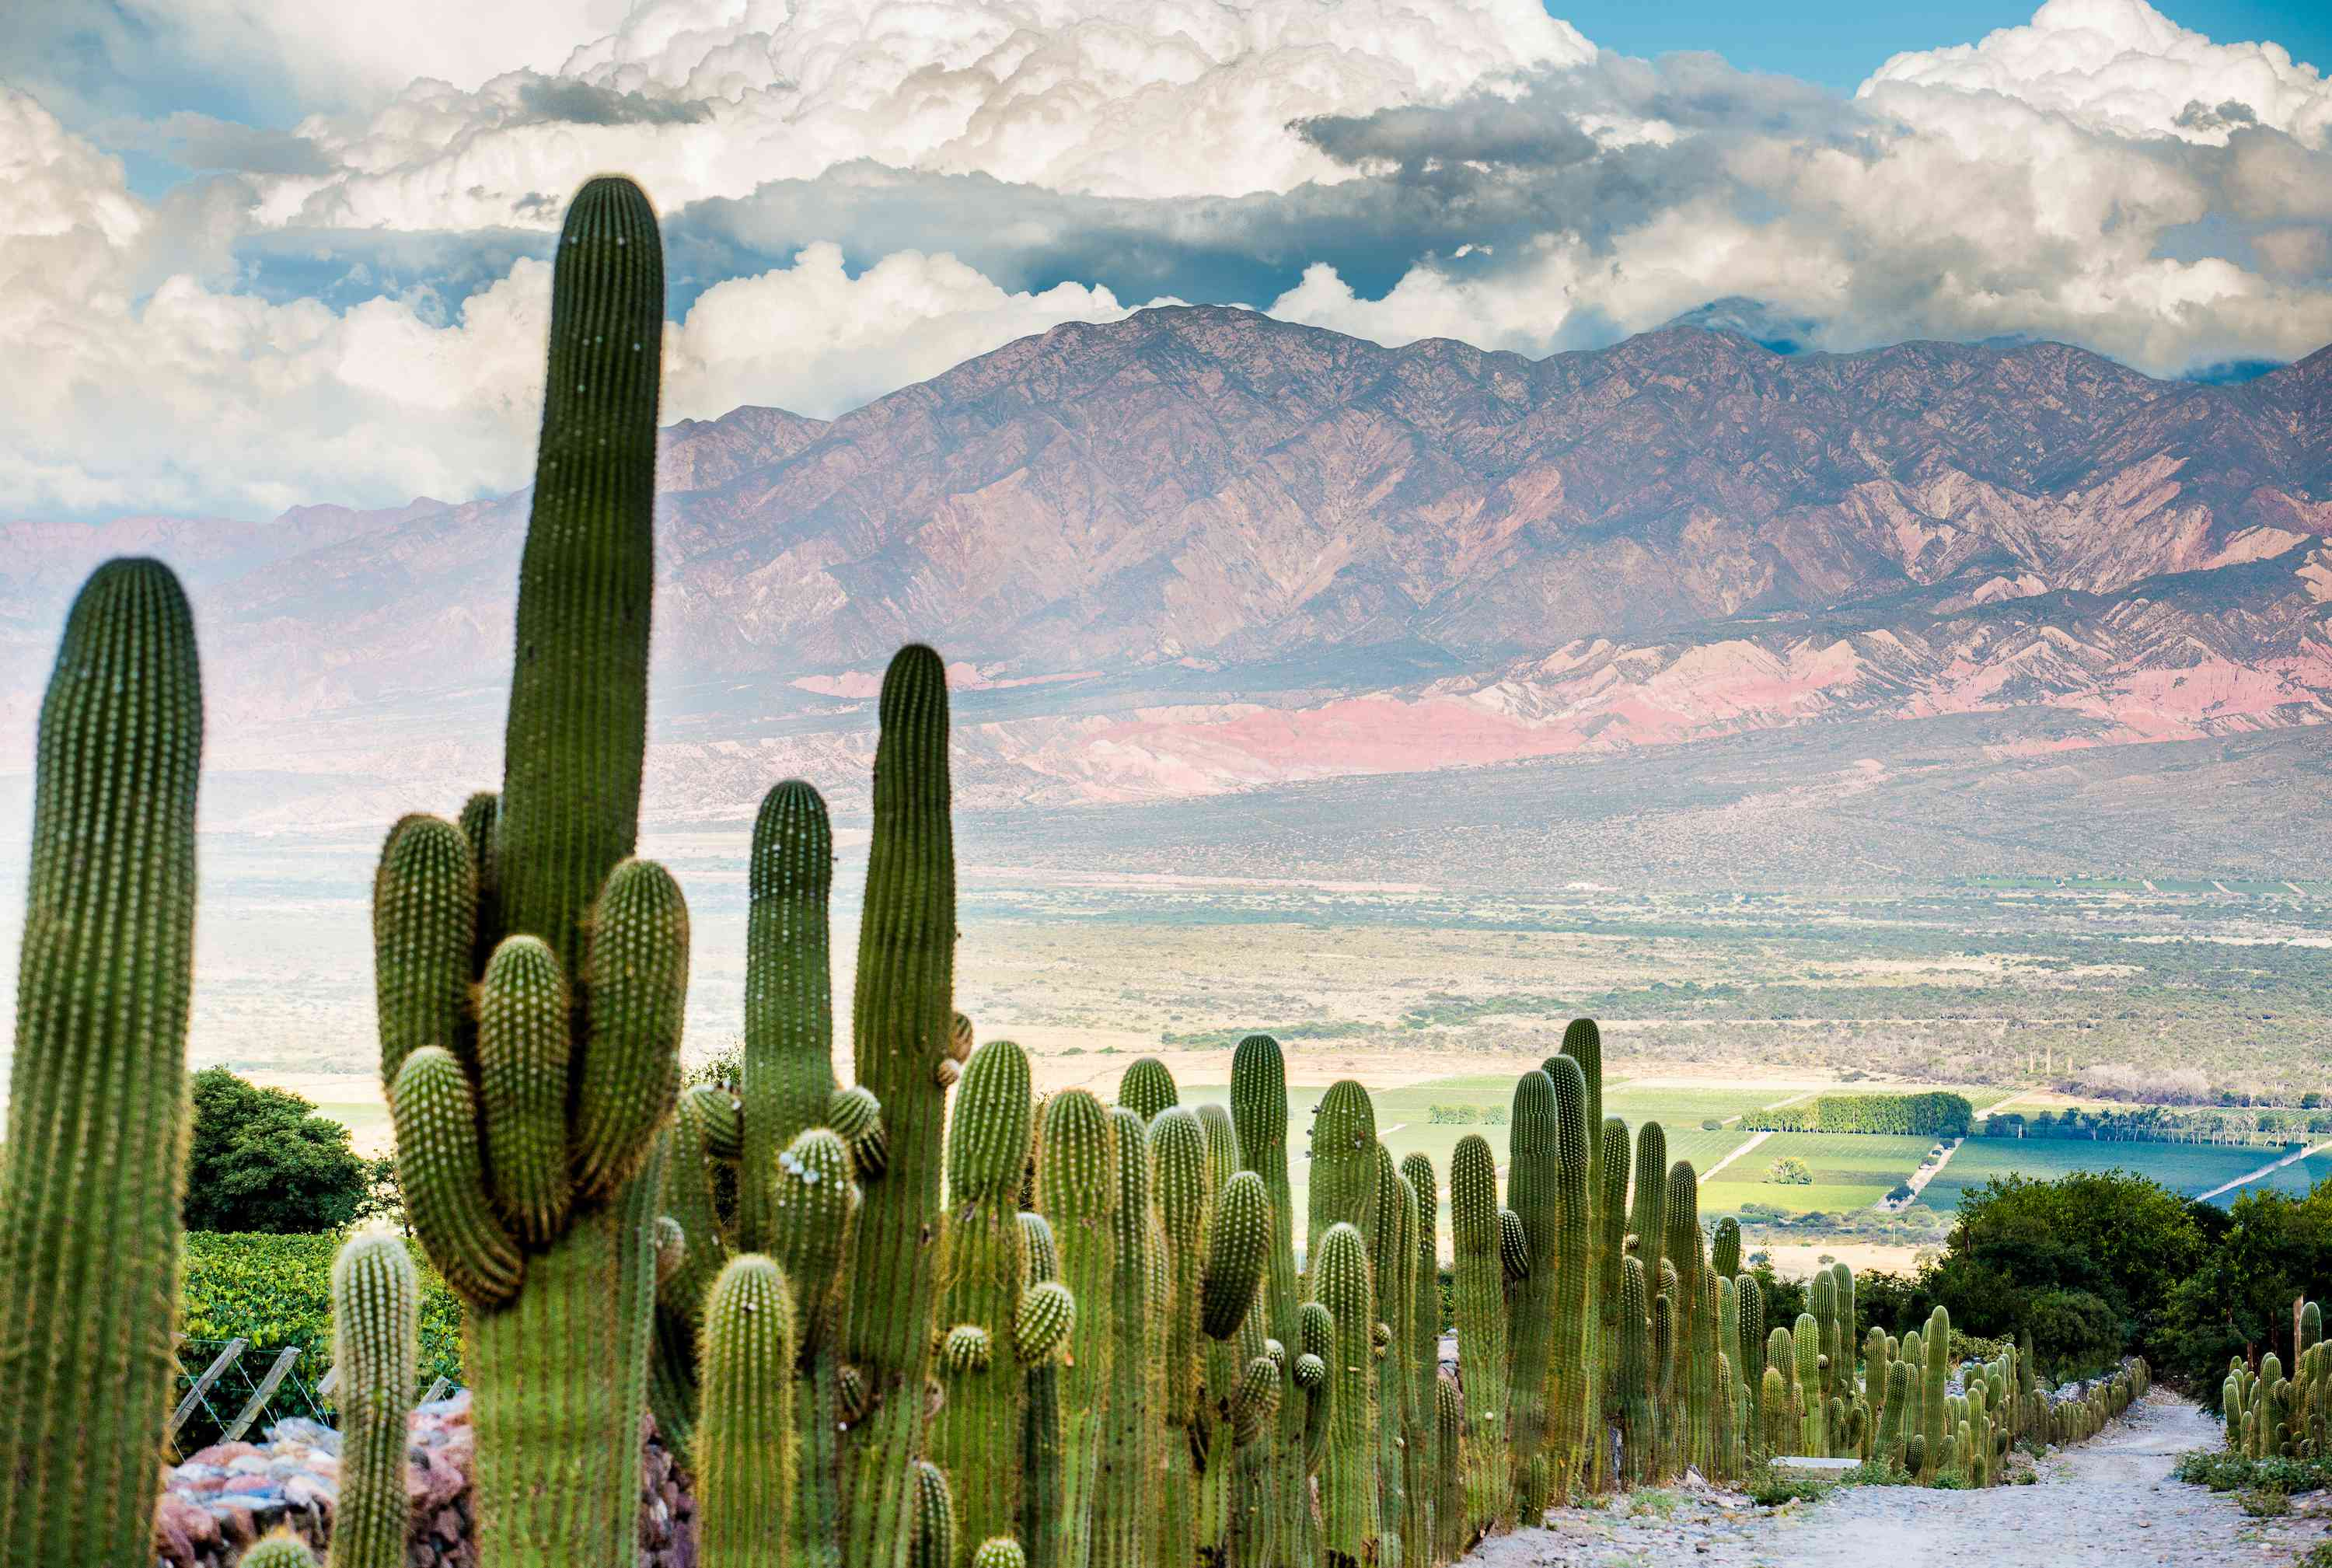 landscape photo with cacti and mountains